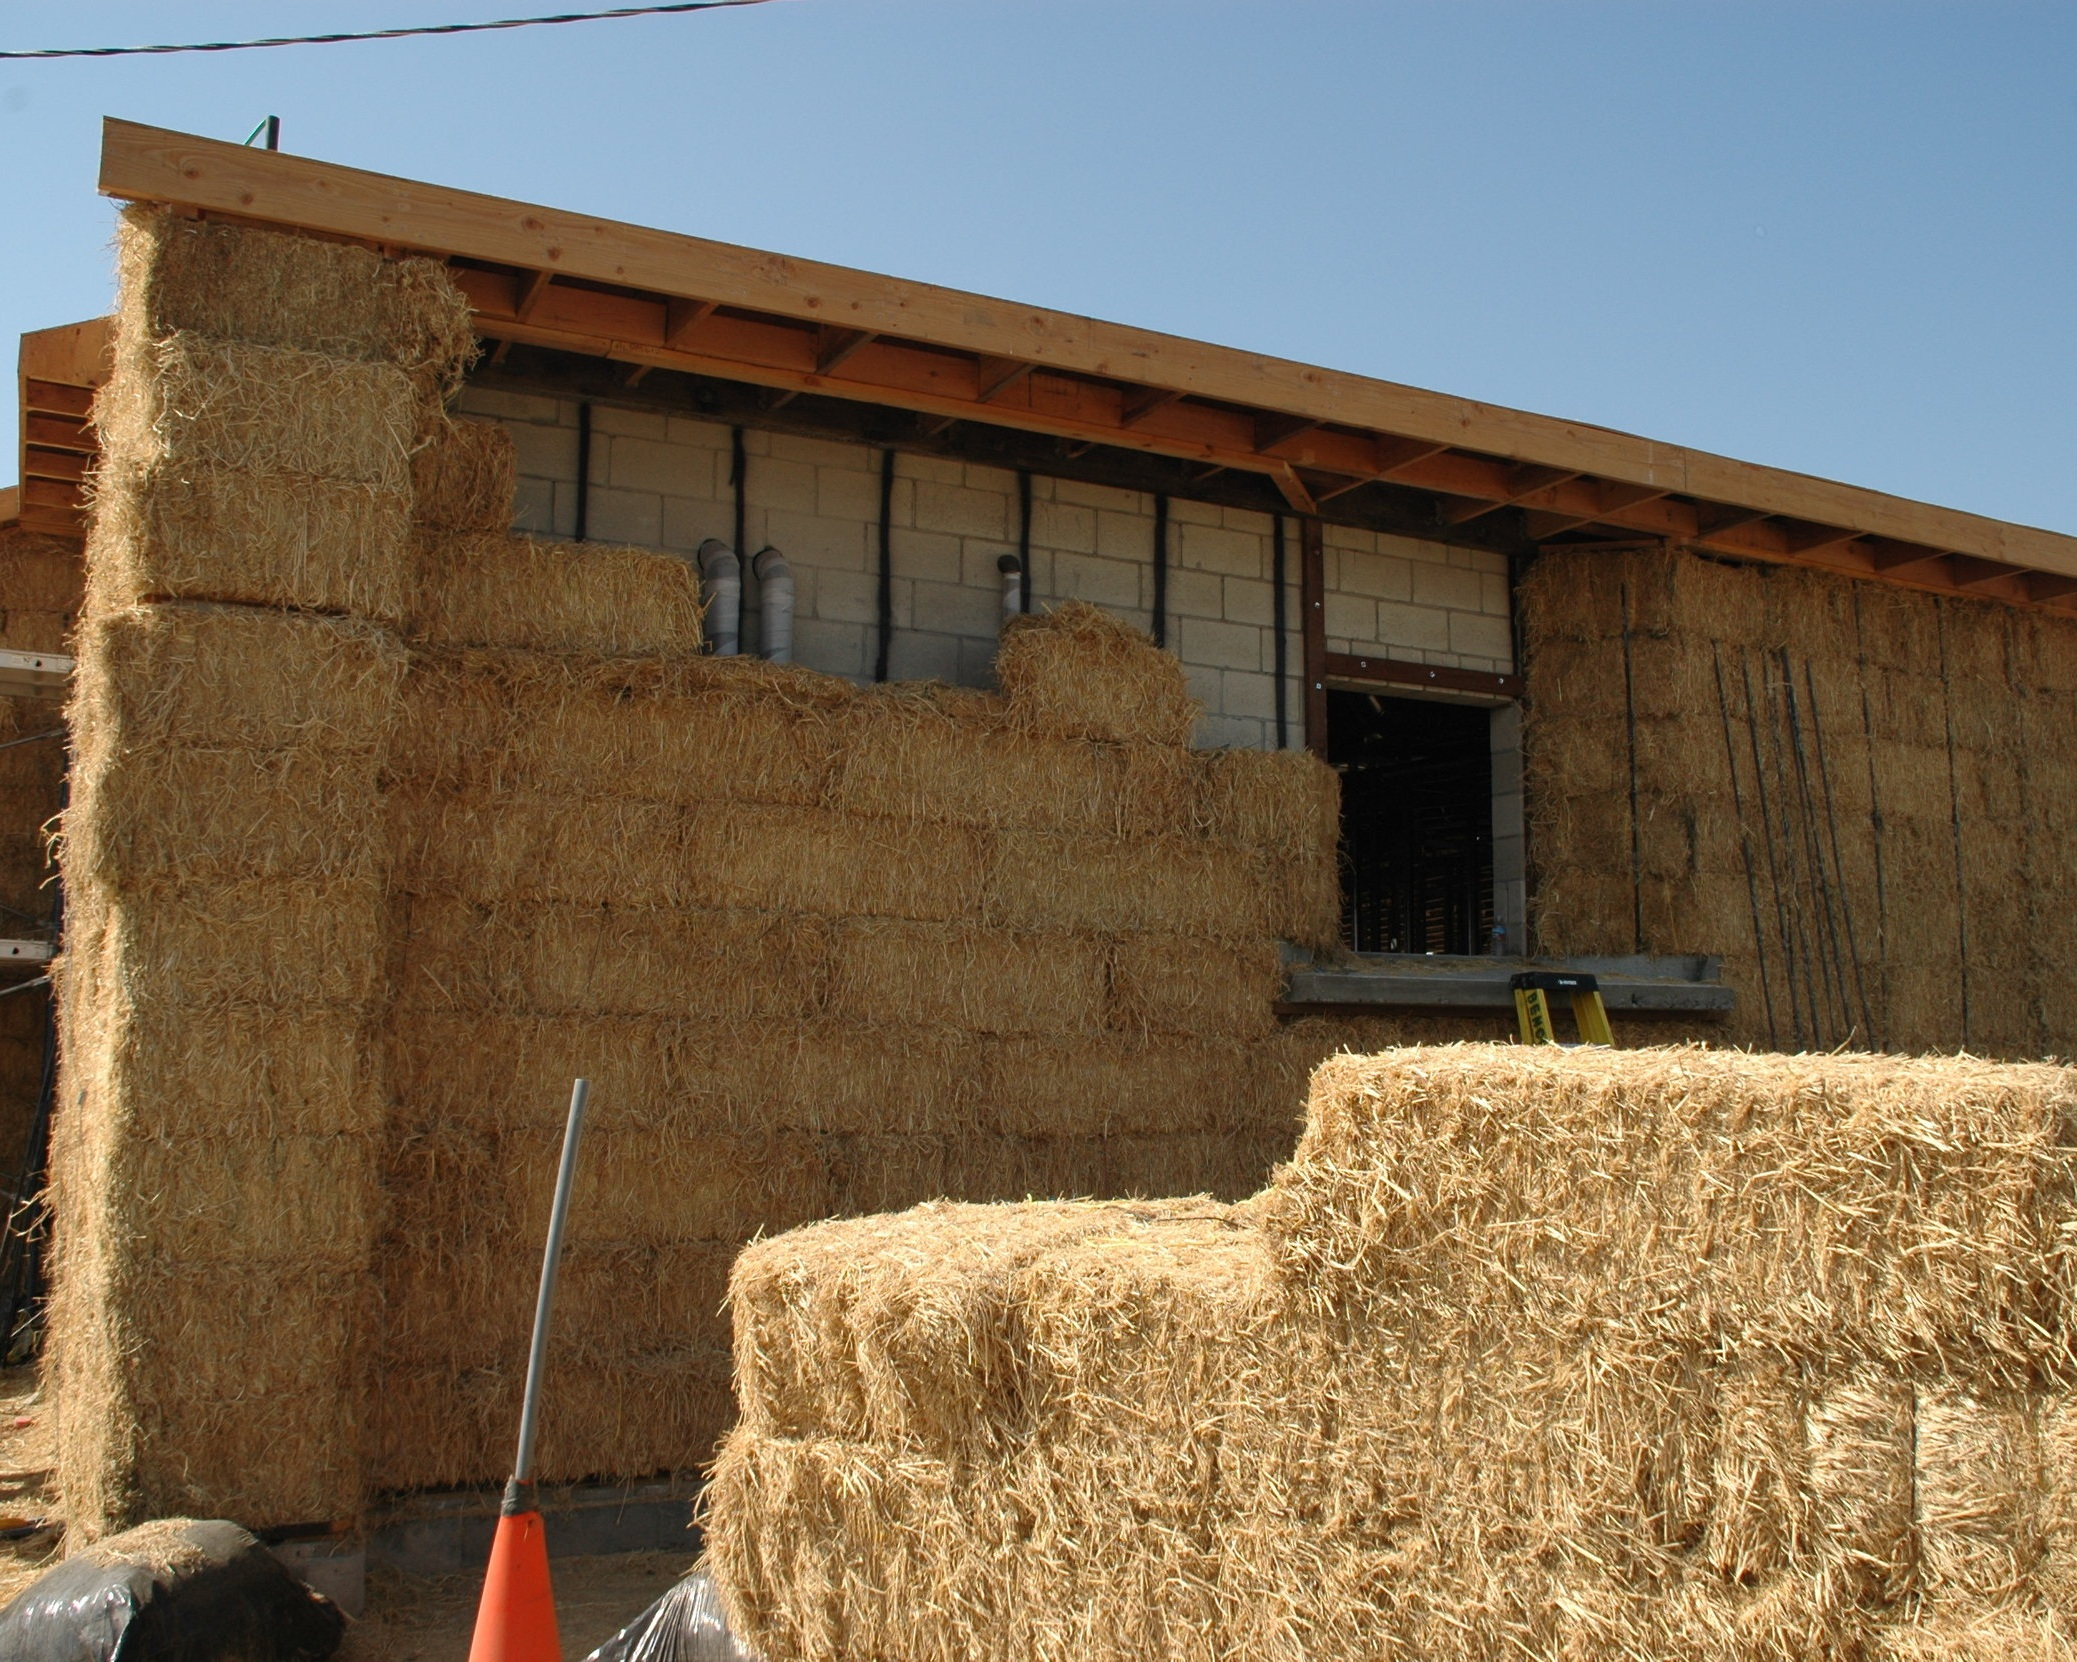 """UTILITY BILLS SLASHED. - Straw Bale Architecture with highly energy-efficient straw bale walls provide an equivalent thermal resistance of R-40, more than twice the thermal insulation of standard construction and result in substantially lower heating and air conditioning bills. This, together with proper orientation of windows, a super-insulated and reflective """"cool roof"""", and a night air ventilation system result in utility bills which can be 50% less than conventional construction. The additional building mass provided by straw bale serves as a """"thermal flywheel"""", helping to reduce indoor temperature variation, improving the thermal comfort of occupants."""